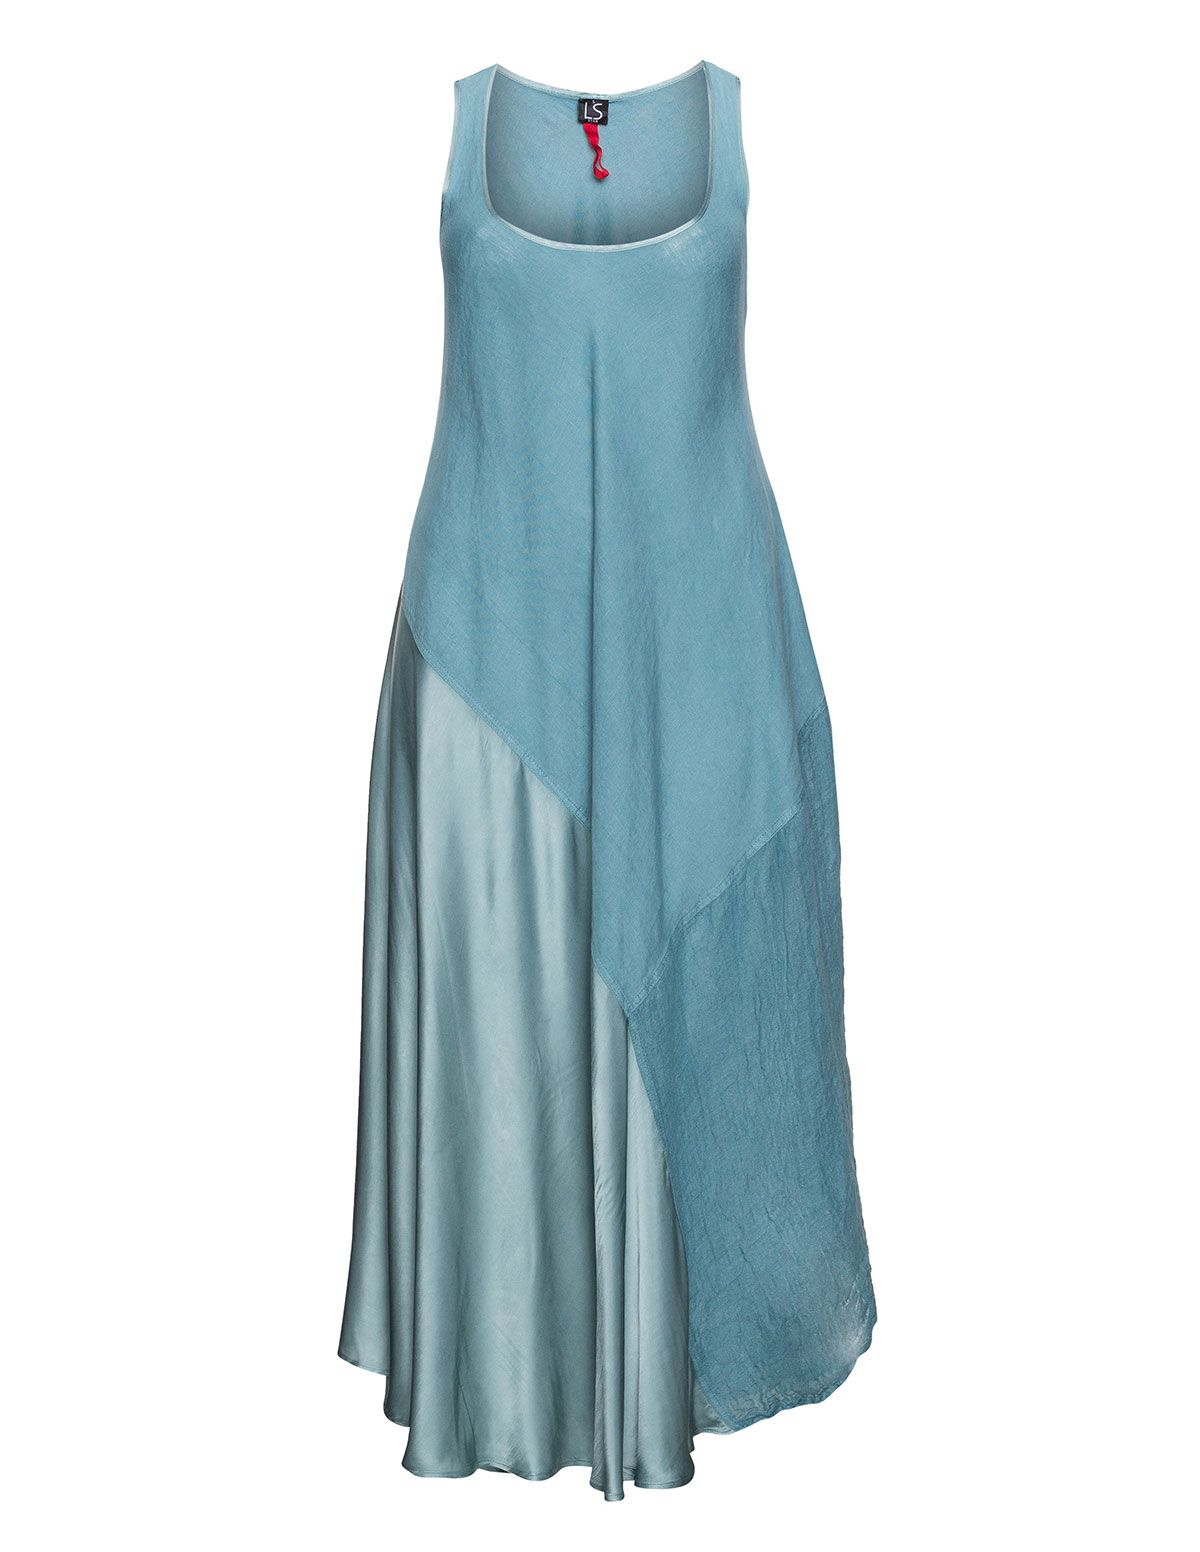 12a06ecb9241a1 La Stampa Satin linen maxi dress in Turquoise